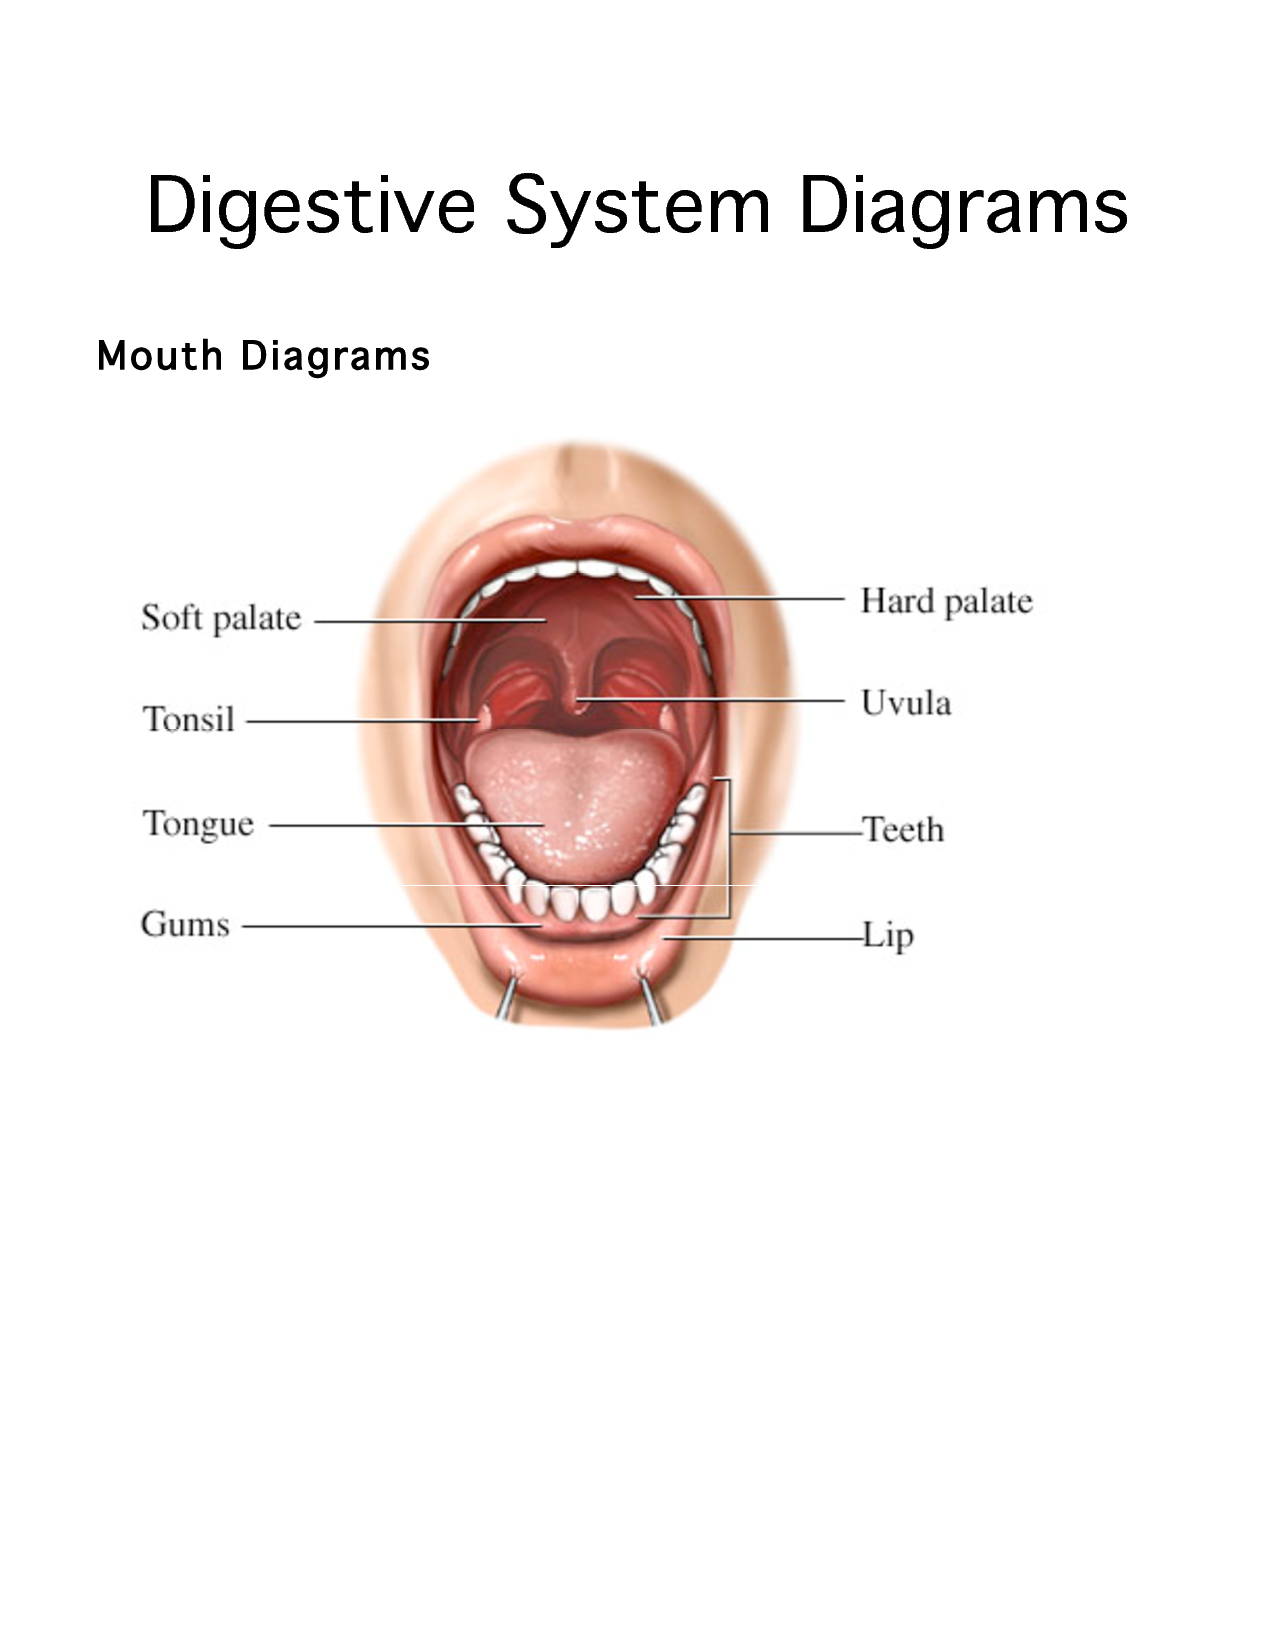 Blank mouth diagram free vehicle wiring diagrams human digestive system diagram digestive system diagrams mouth rh pinterest com blank body diagram blank tooth diagram ccuart Images